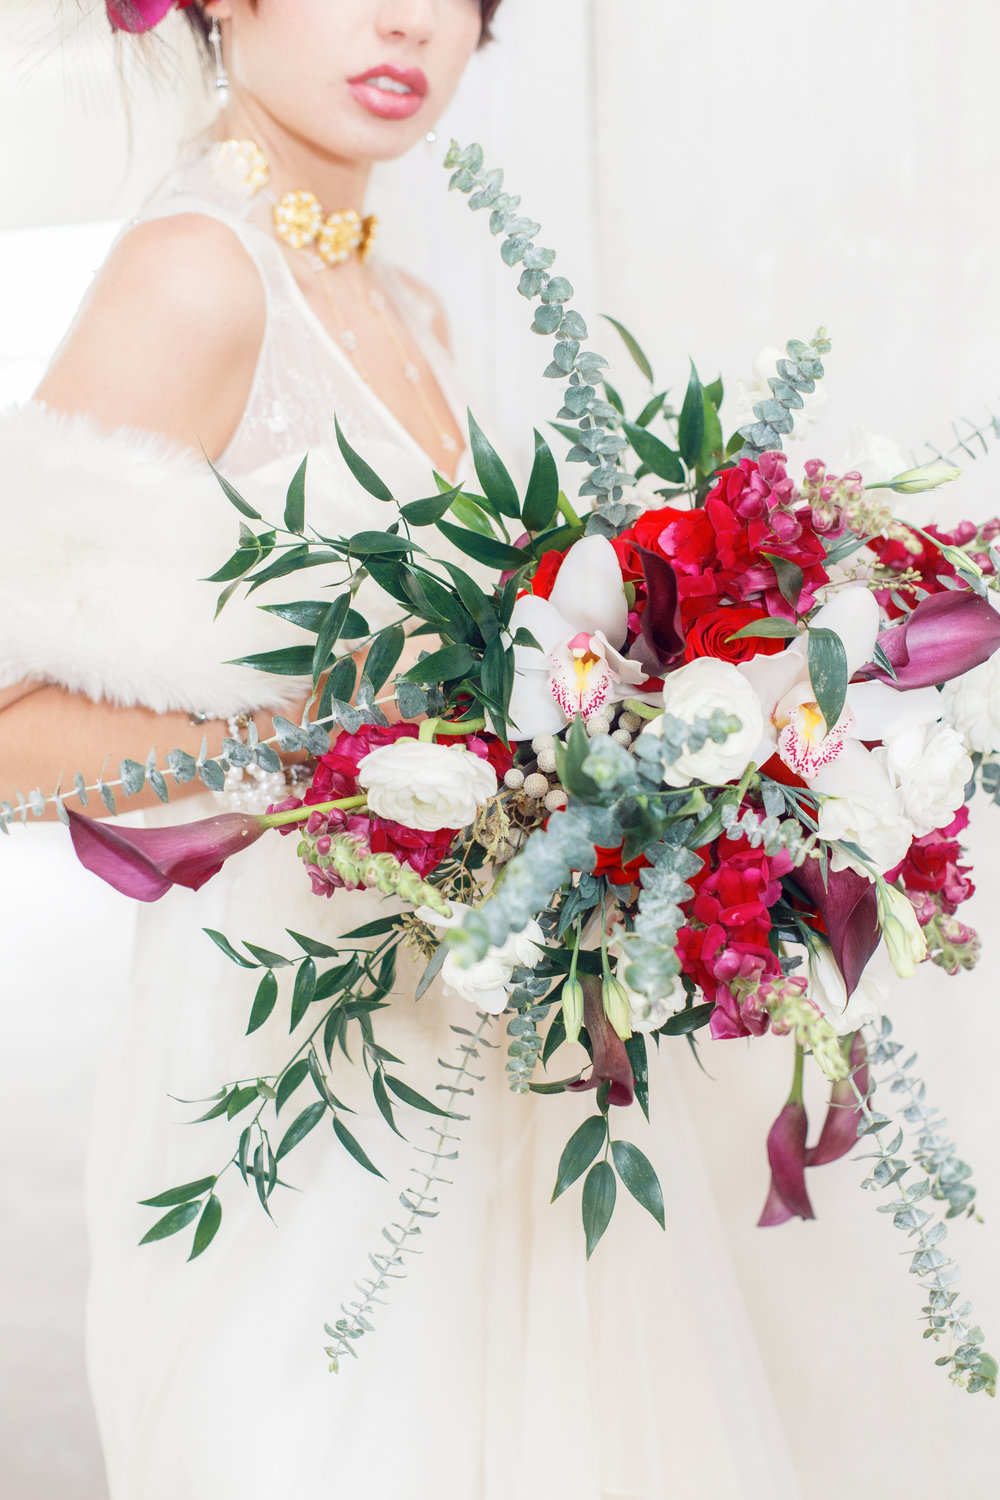 Burgundy and Green Vintage Russian Wedding | Edera Jewelry Blog